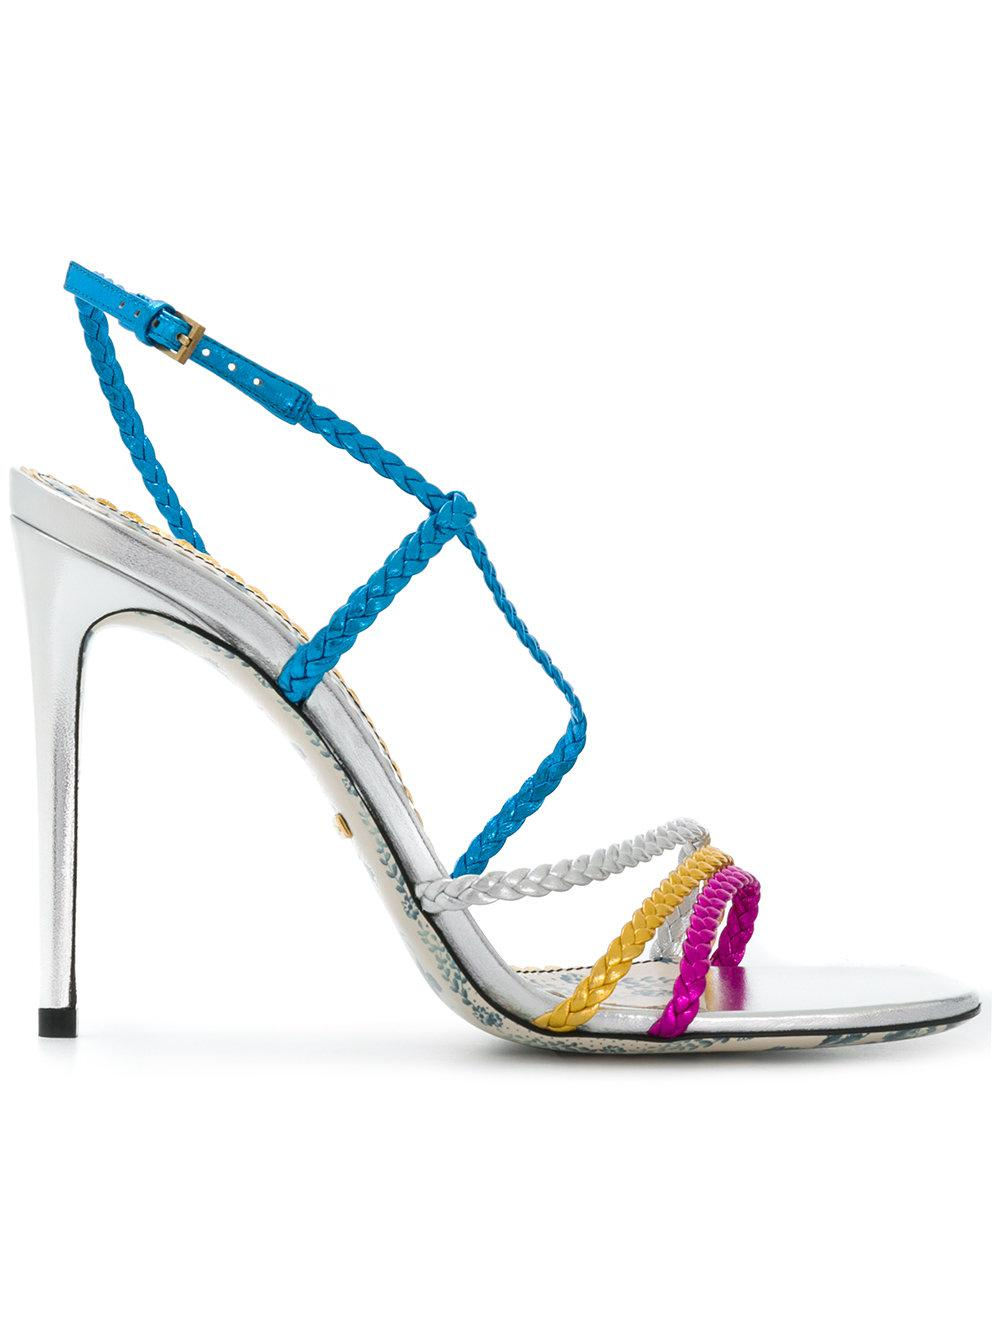 9421efc0f66a Gucci. Women s Blue Haines Braided Metallic Leather Slingback Sandals